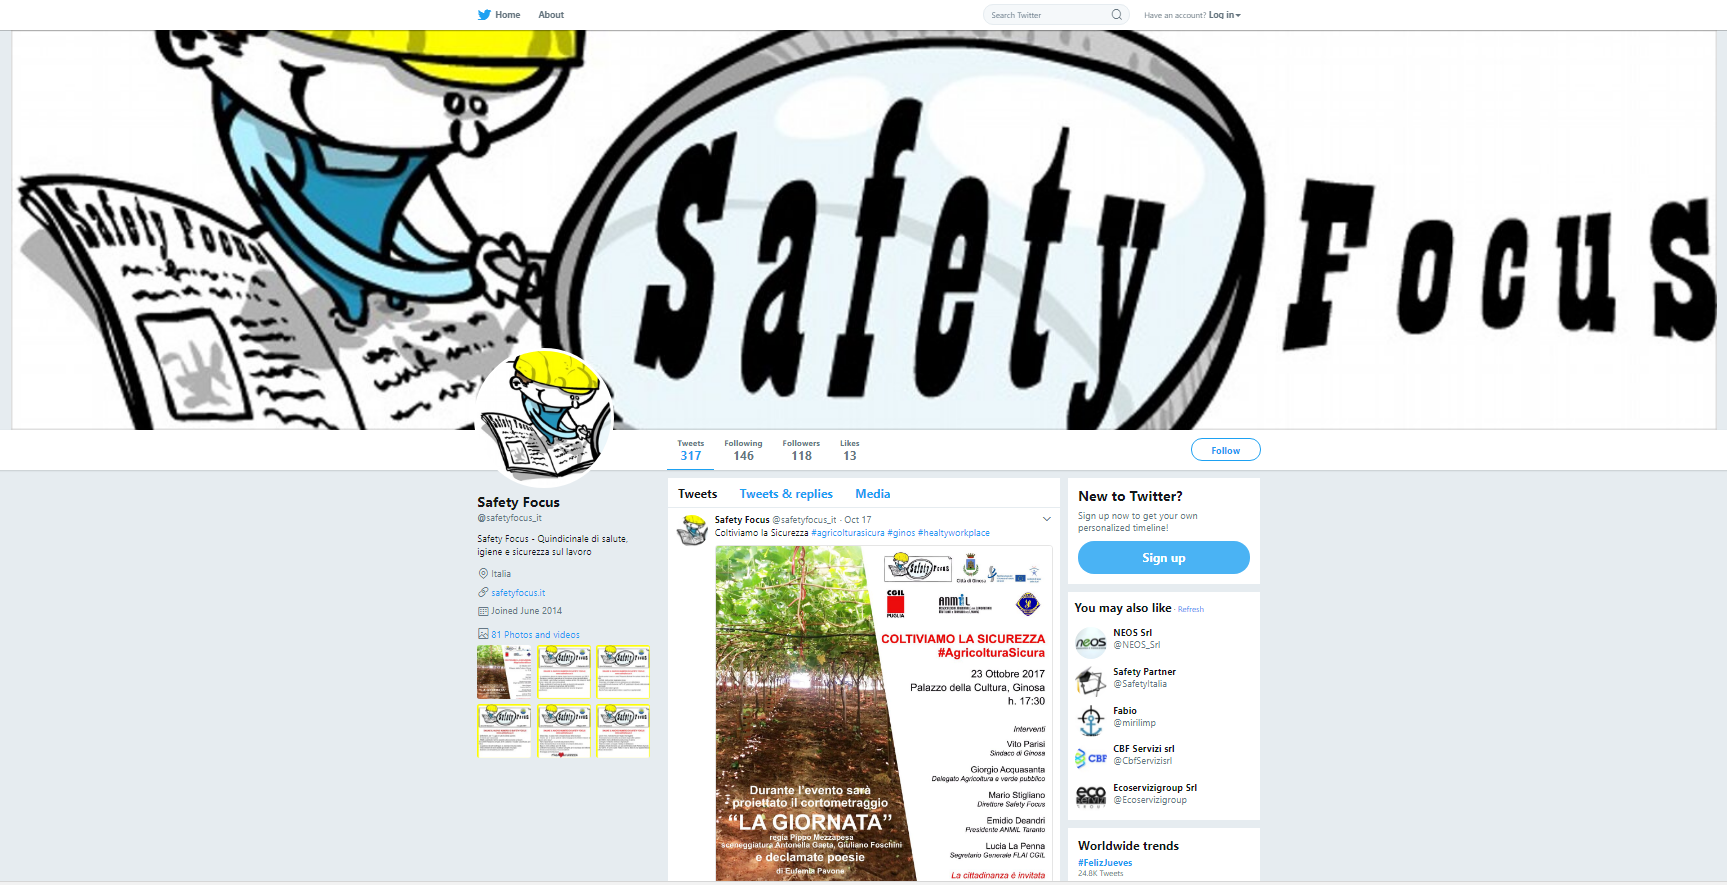 Safety Focus Twitter profile